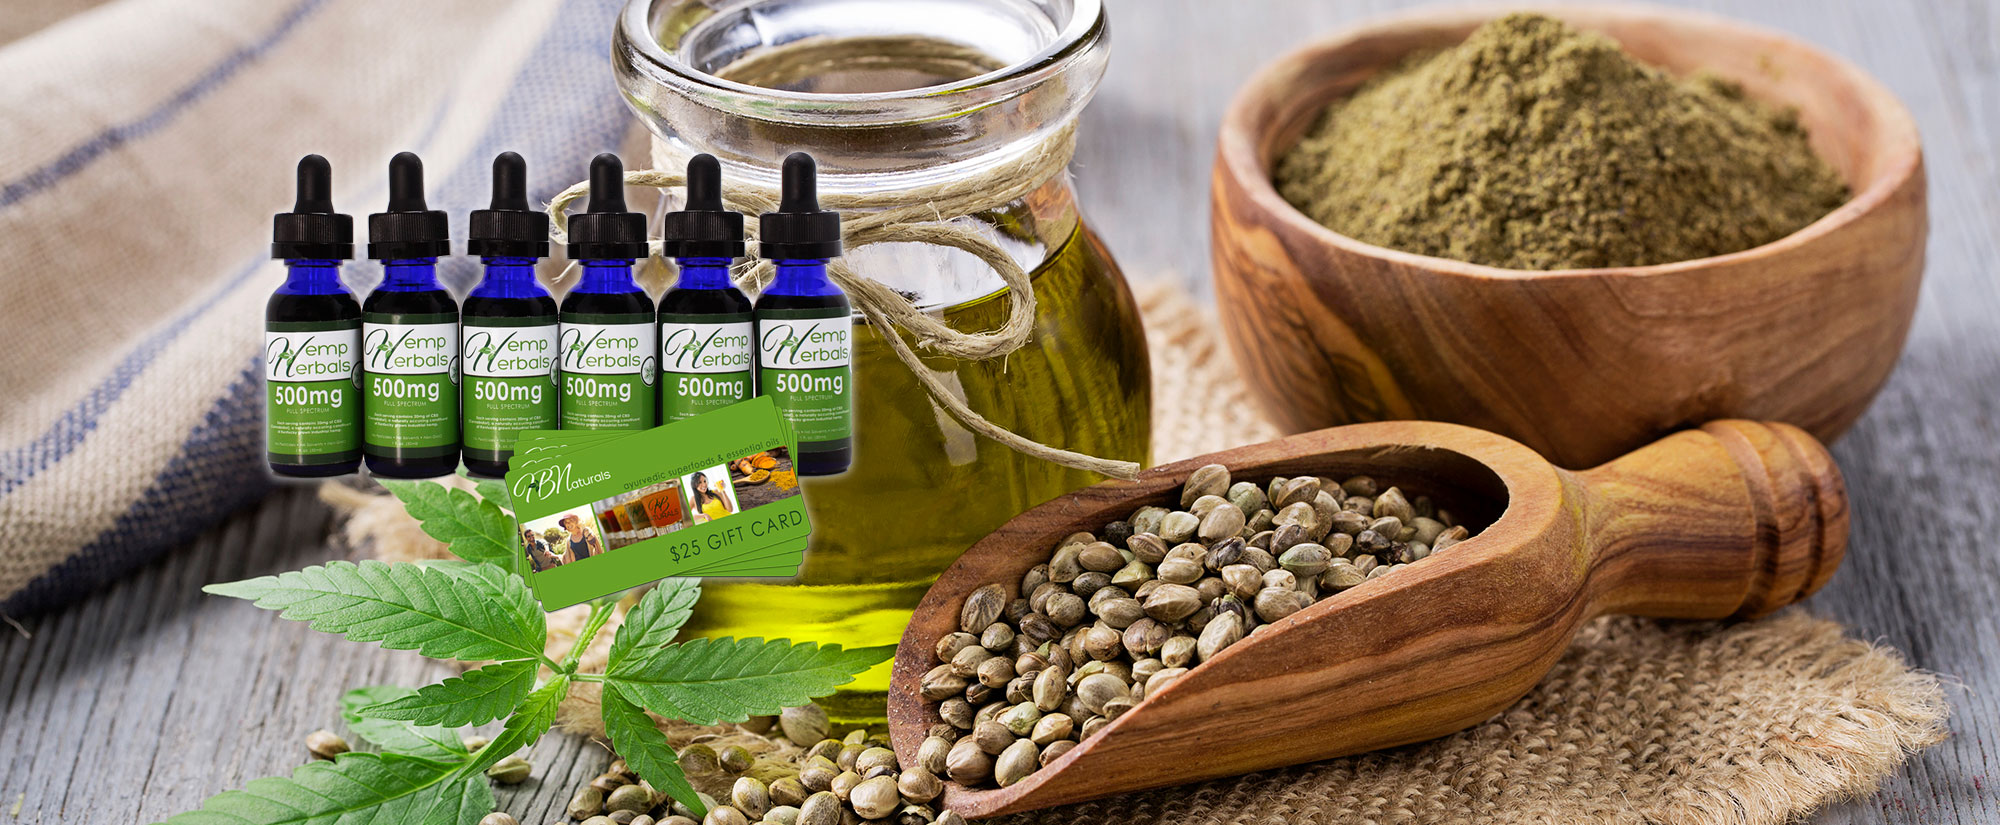 Hemp Herbals Value Pack